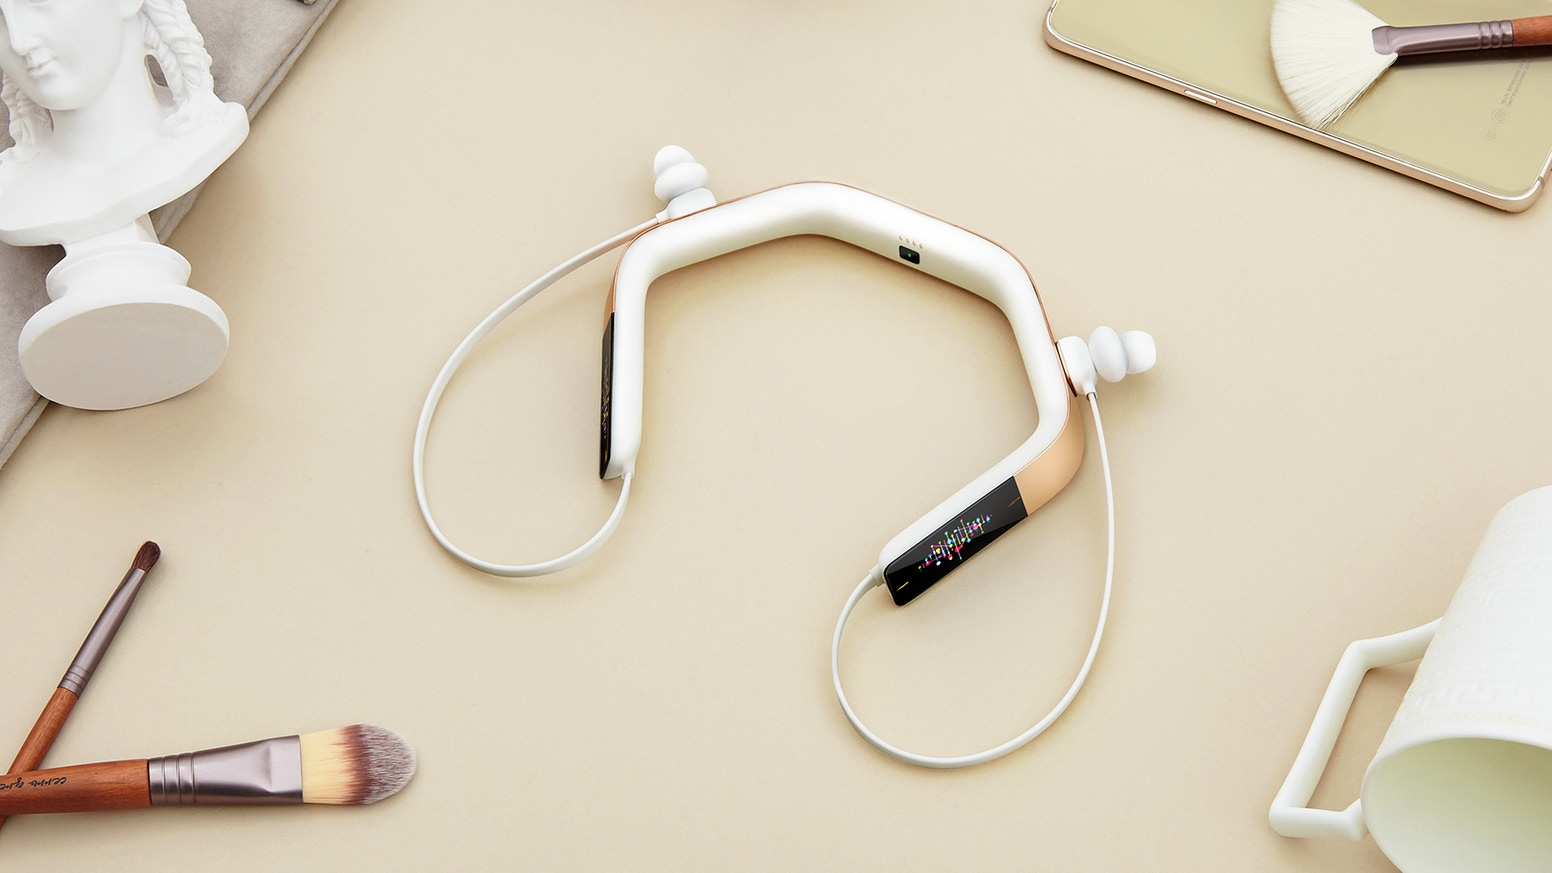 Vinci 2.0-World's First Standalone Smart Wireless Headphones